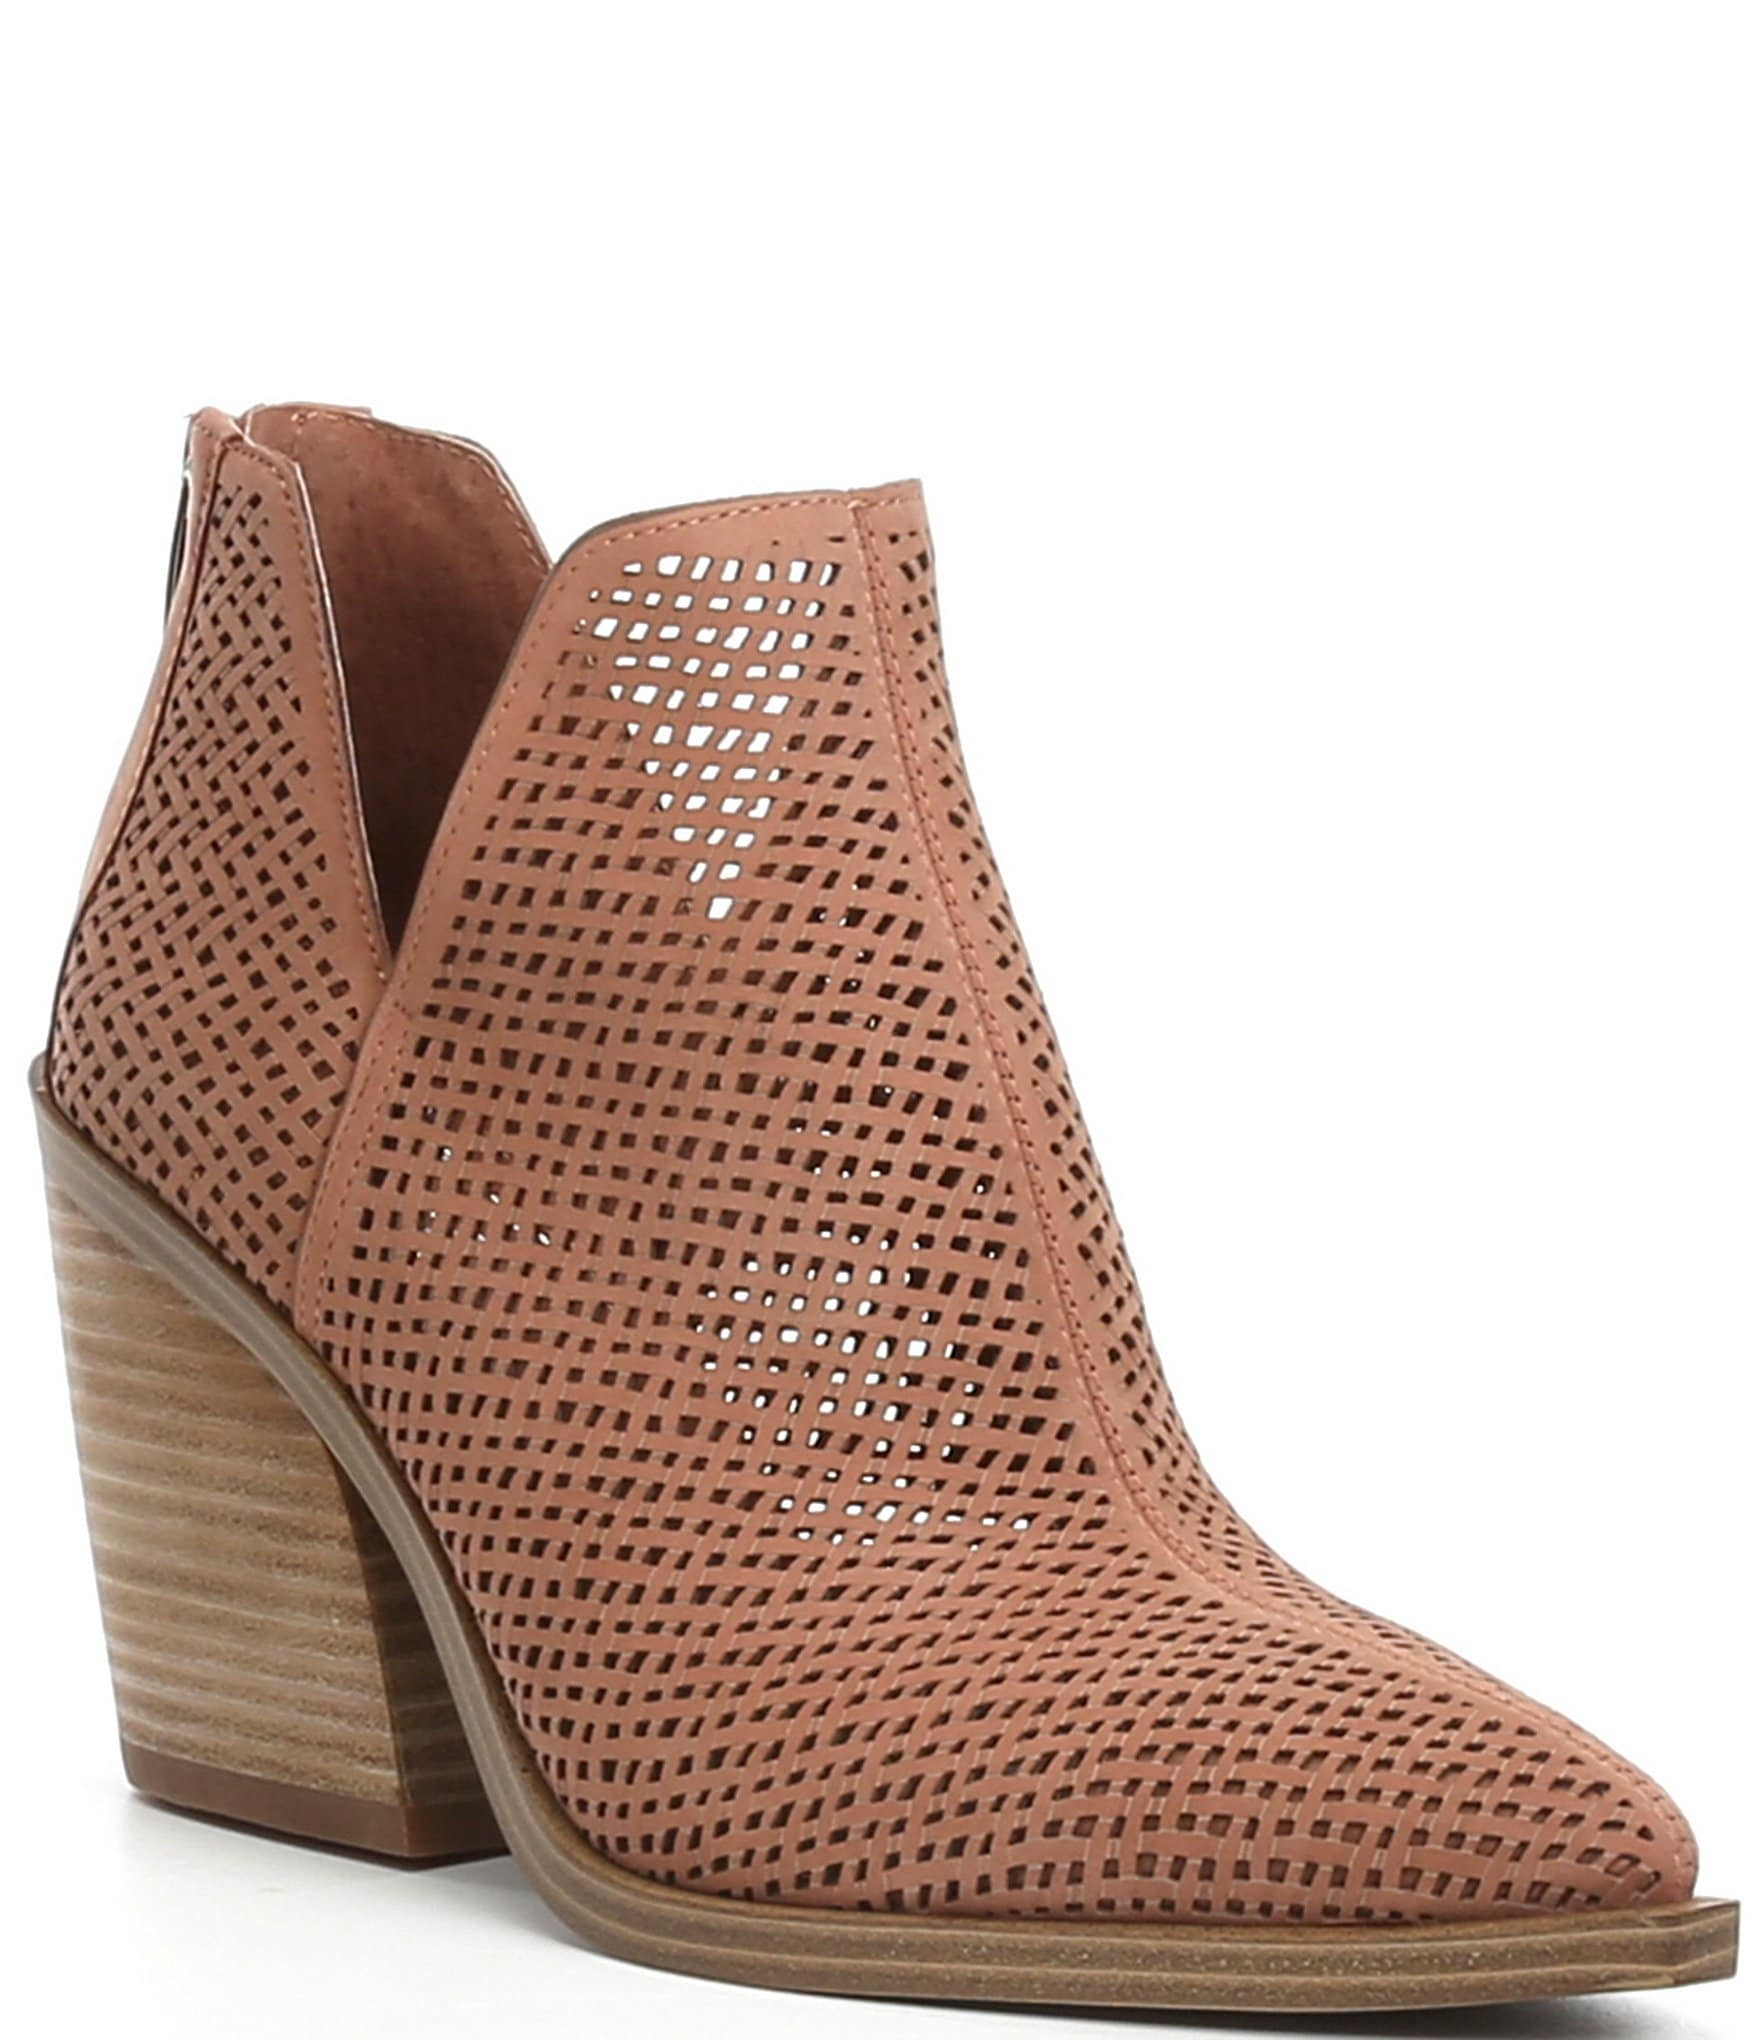 Vince Camuto Gibbela Perforated Woven